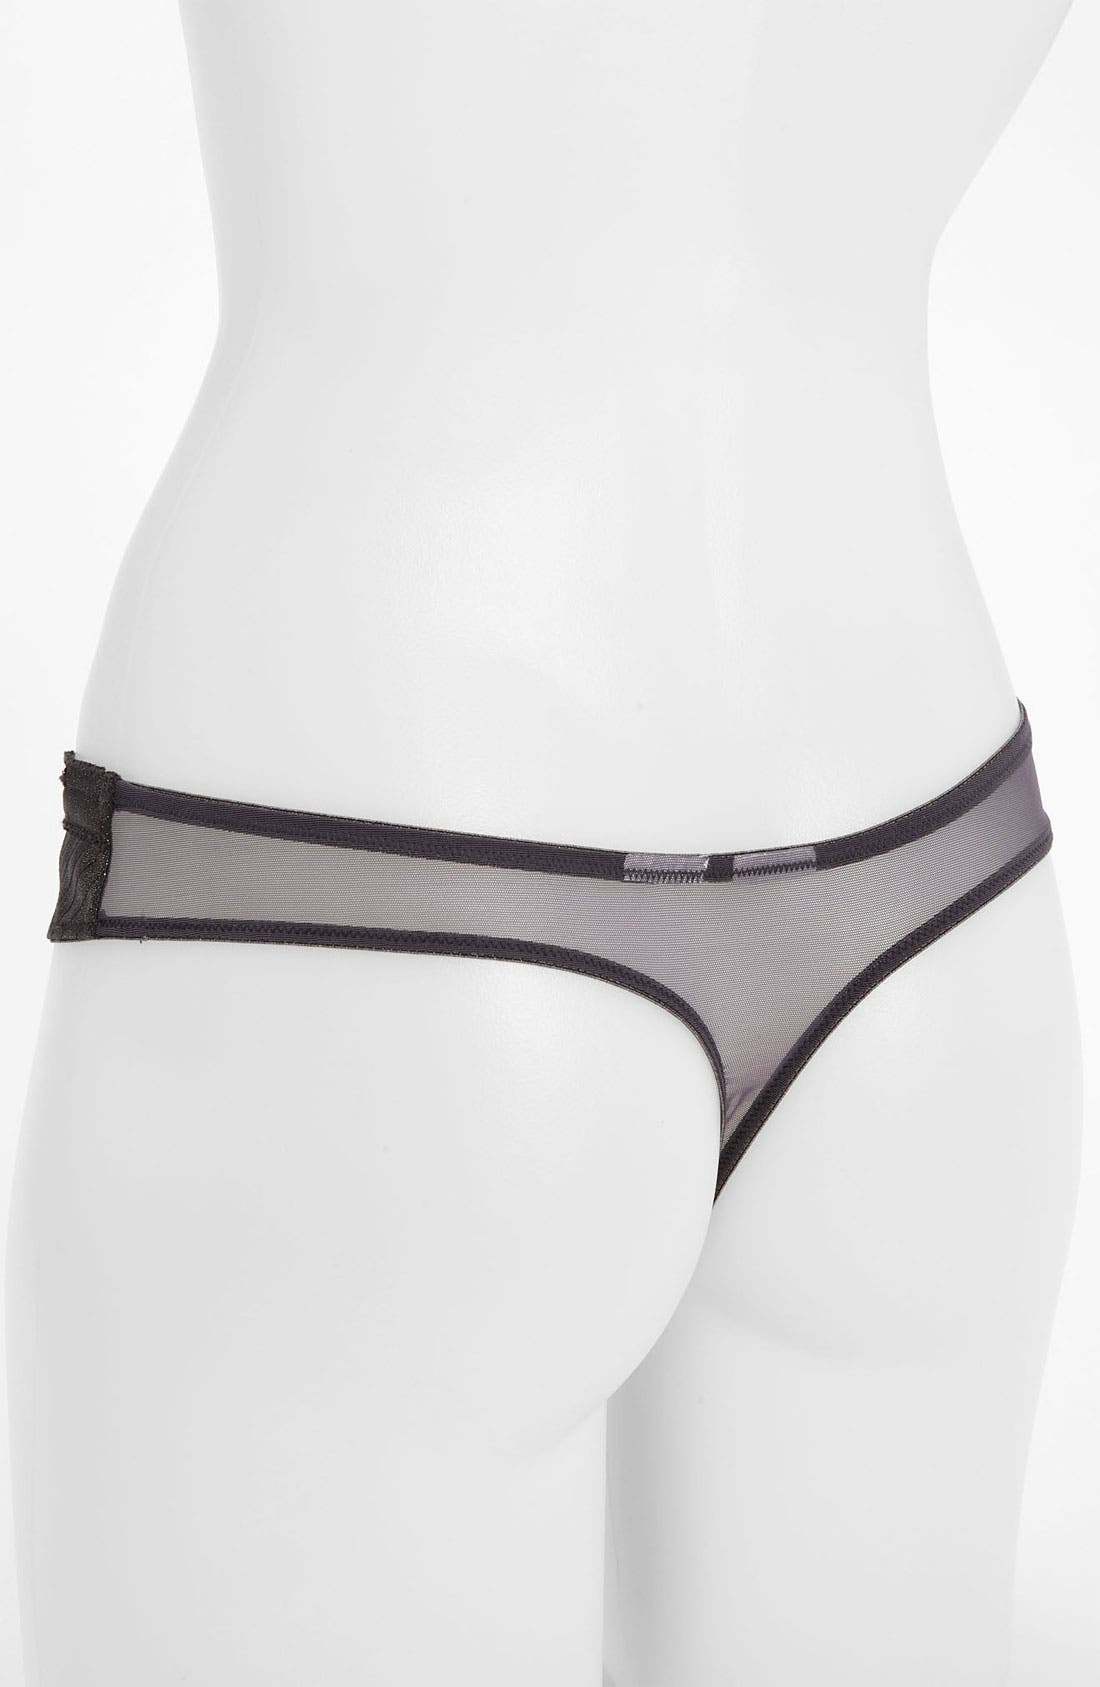 'Satin Structure' Thong,                             Alternate thumbnail 2, color,                             Gunmetal